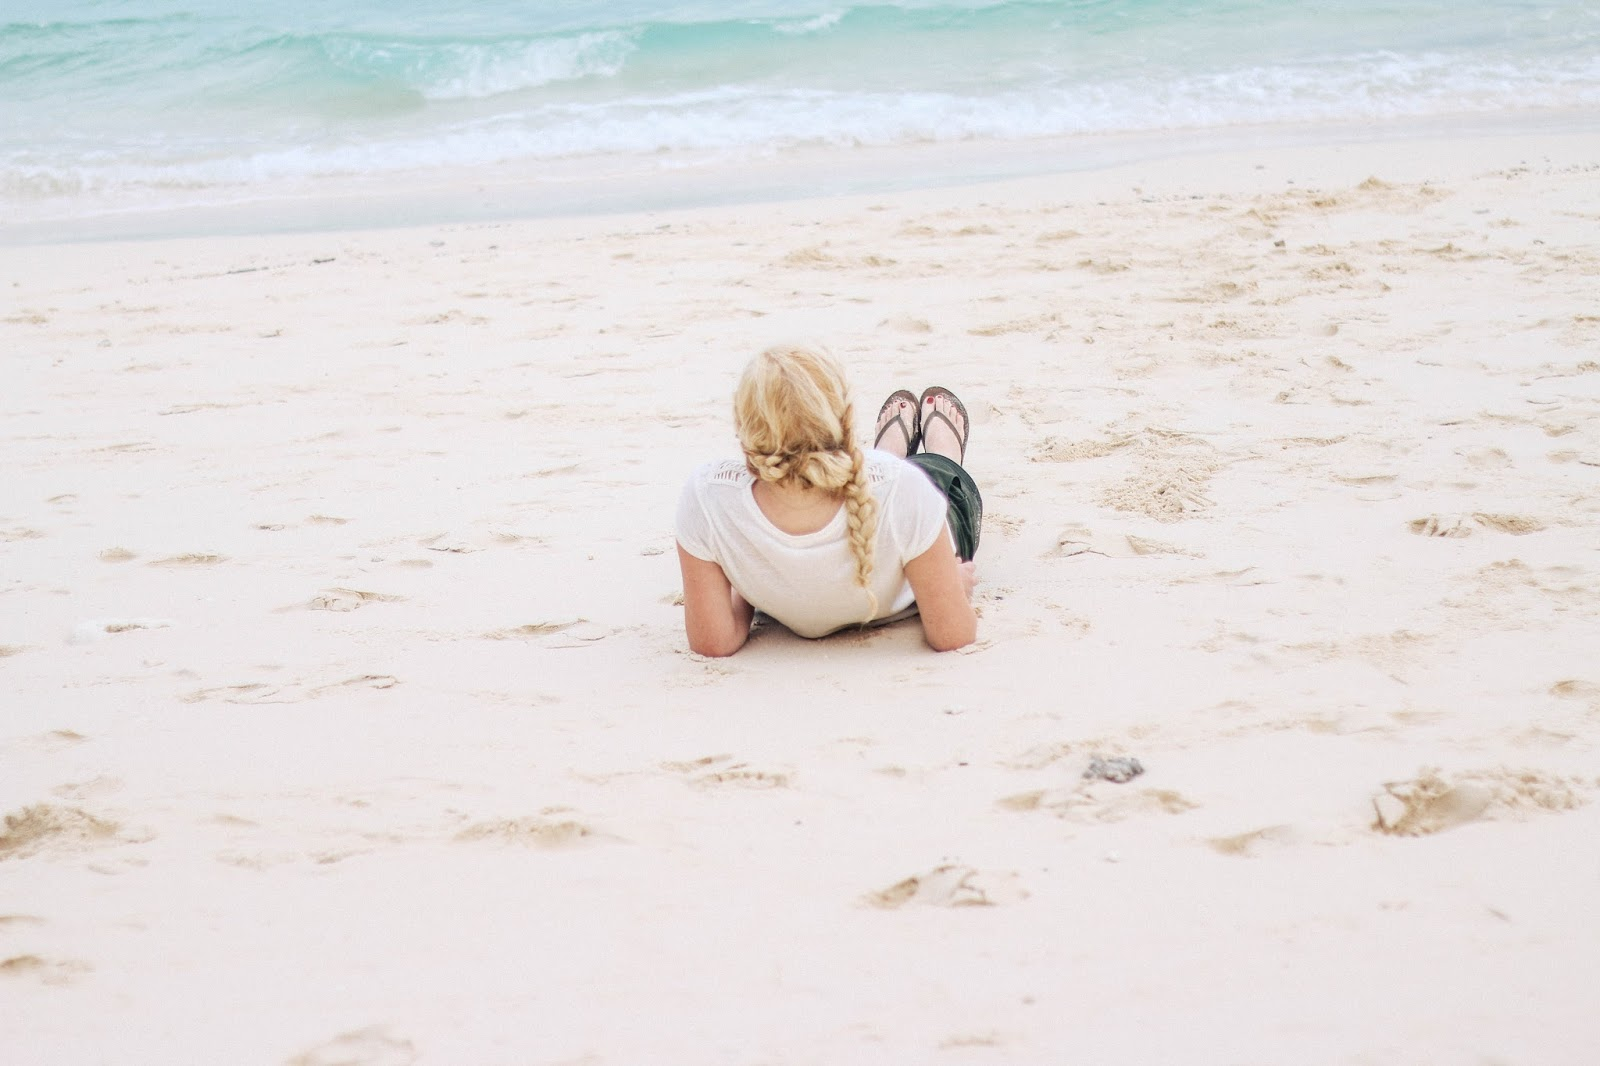 Fashion and Travel Blogger GlobalFashionGal (Brianna Degaston) wearing a white boho top and army green shorts at Bamboo Island in the Phi Phi Islands, Thailand.